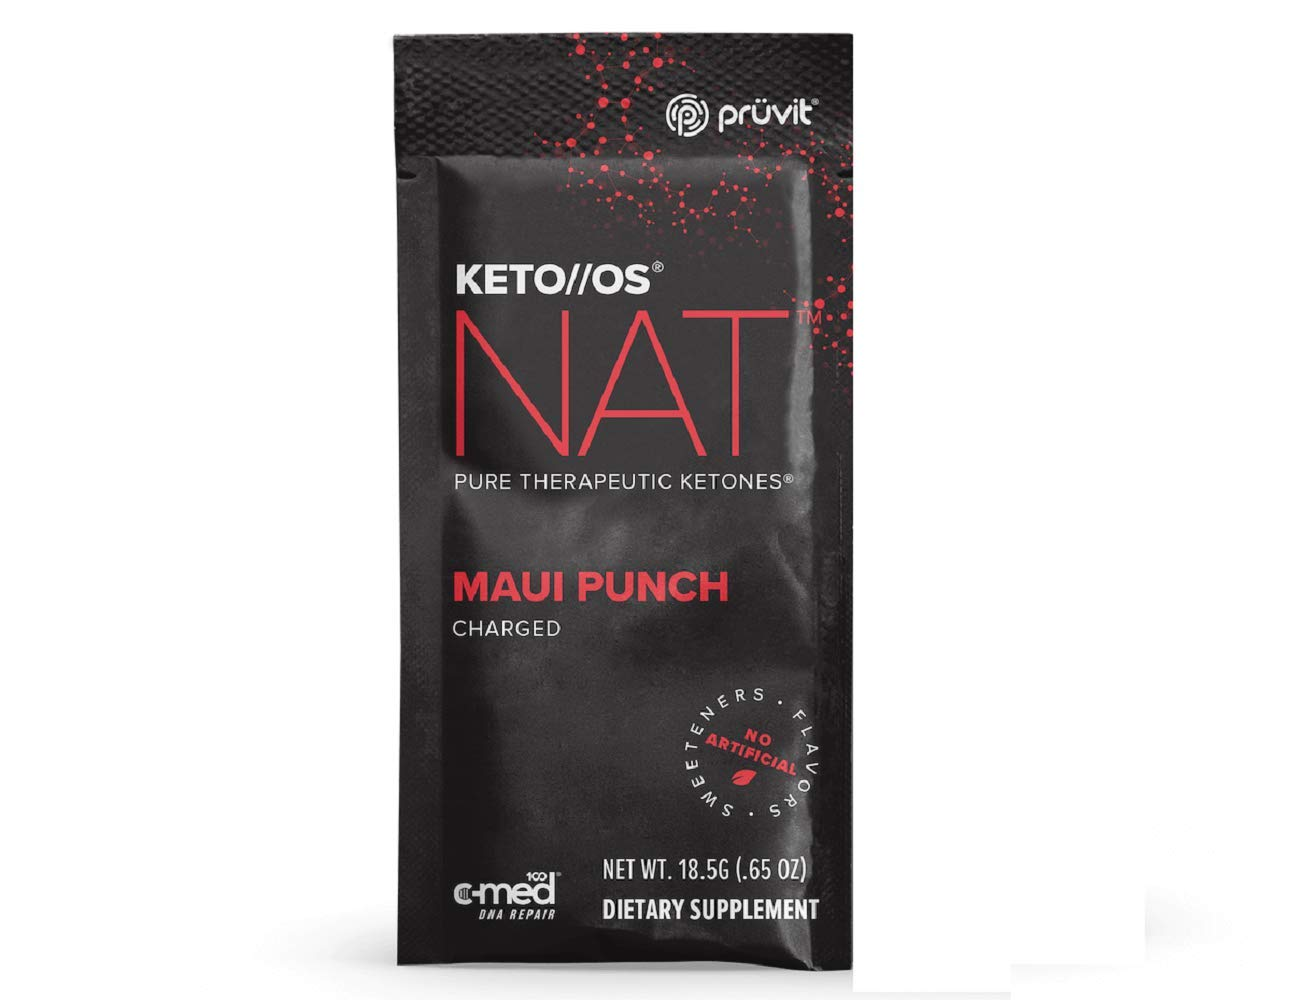 Pruvit Keto//OS NAT, Pruvit Keto//OS MAX, Charged, Maui Punch BHB Salts Ketogenic Supplement Ketones for Fat Loss, Workout Energy Boost Through Fast Ketosis (Keto OS NAT Maui Punch, 3 Sachets)